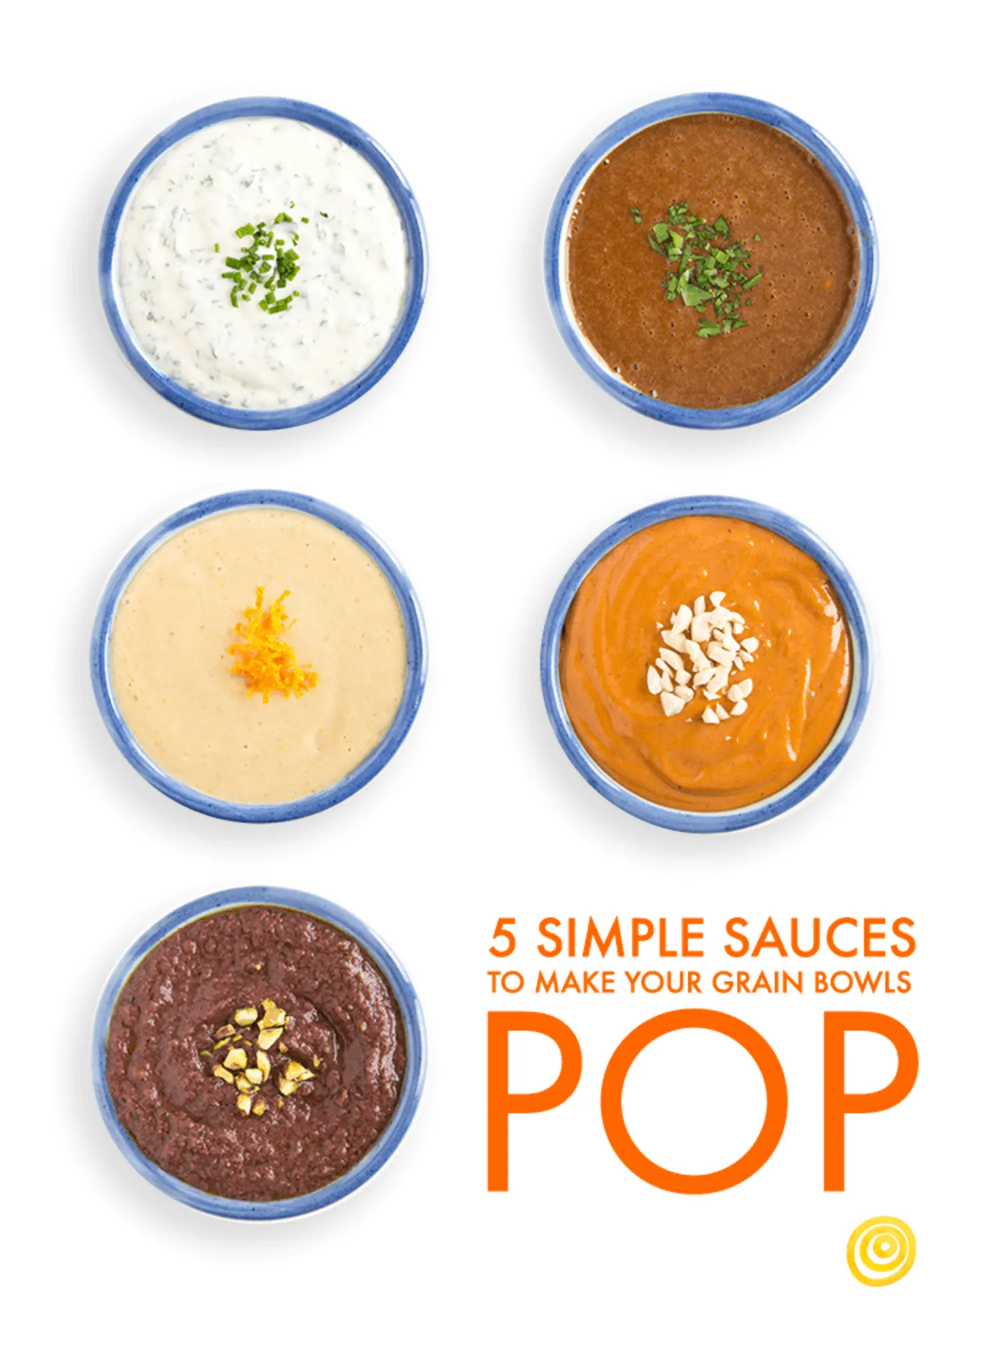 Want to make a better grain bowl this year? The secret's in the sauce. The answer to a better grain bowl is all about how you're topping it. And these five quick sauces — made with ingredients you probably have waiting in your pantry — are an easy way to up to kick up the flavor and make those grain bowls pop. The sauce is the final touch to your grain bowl.